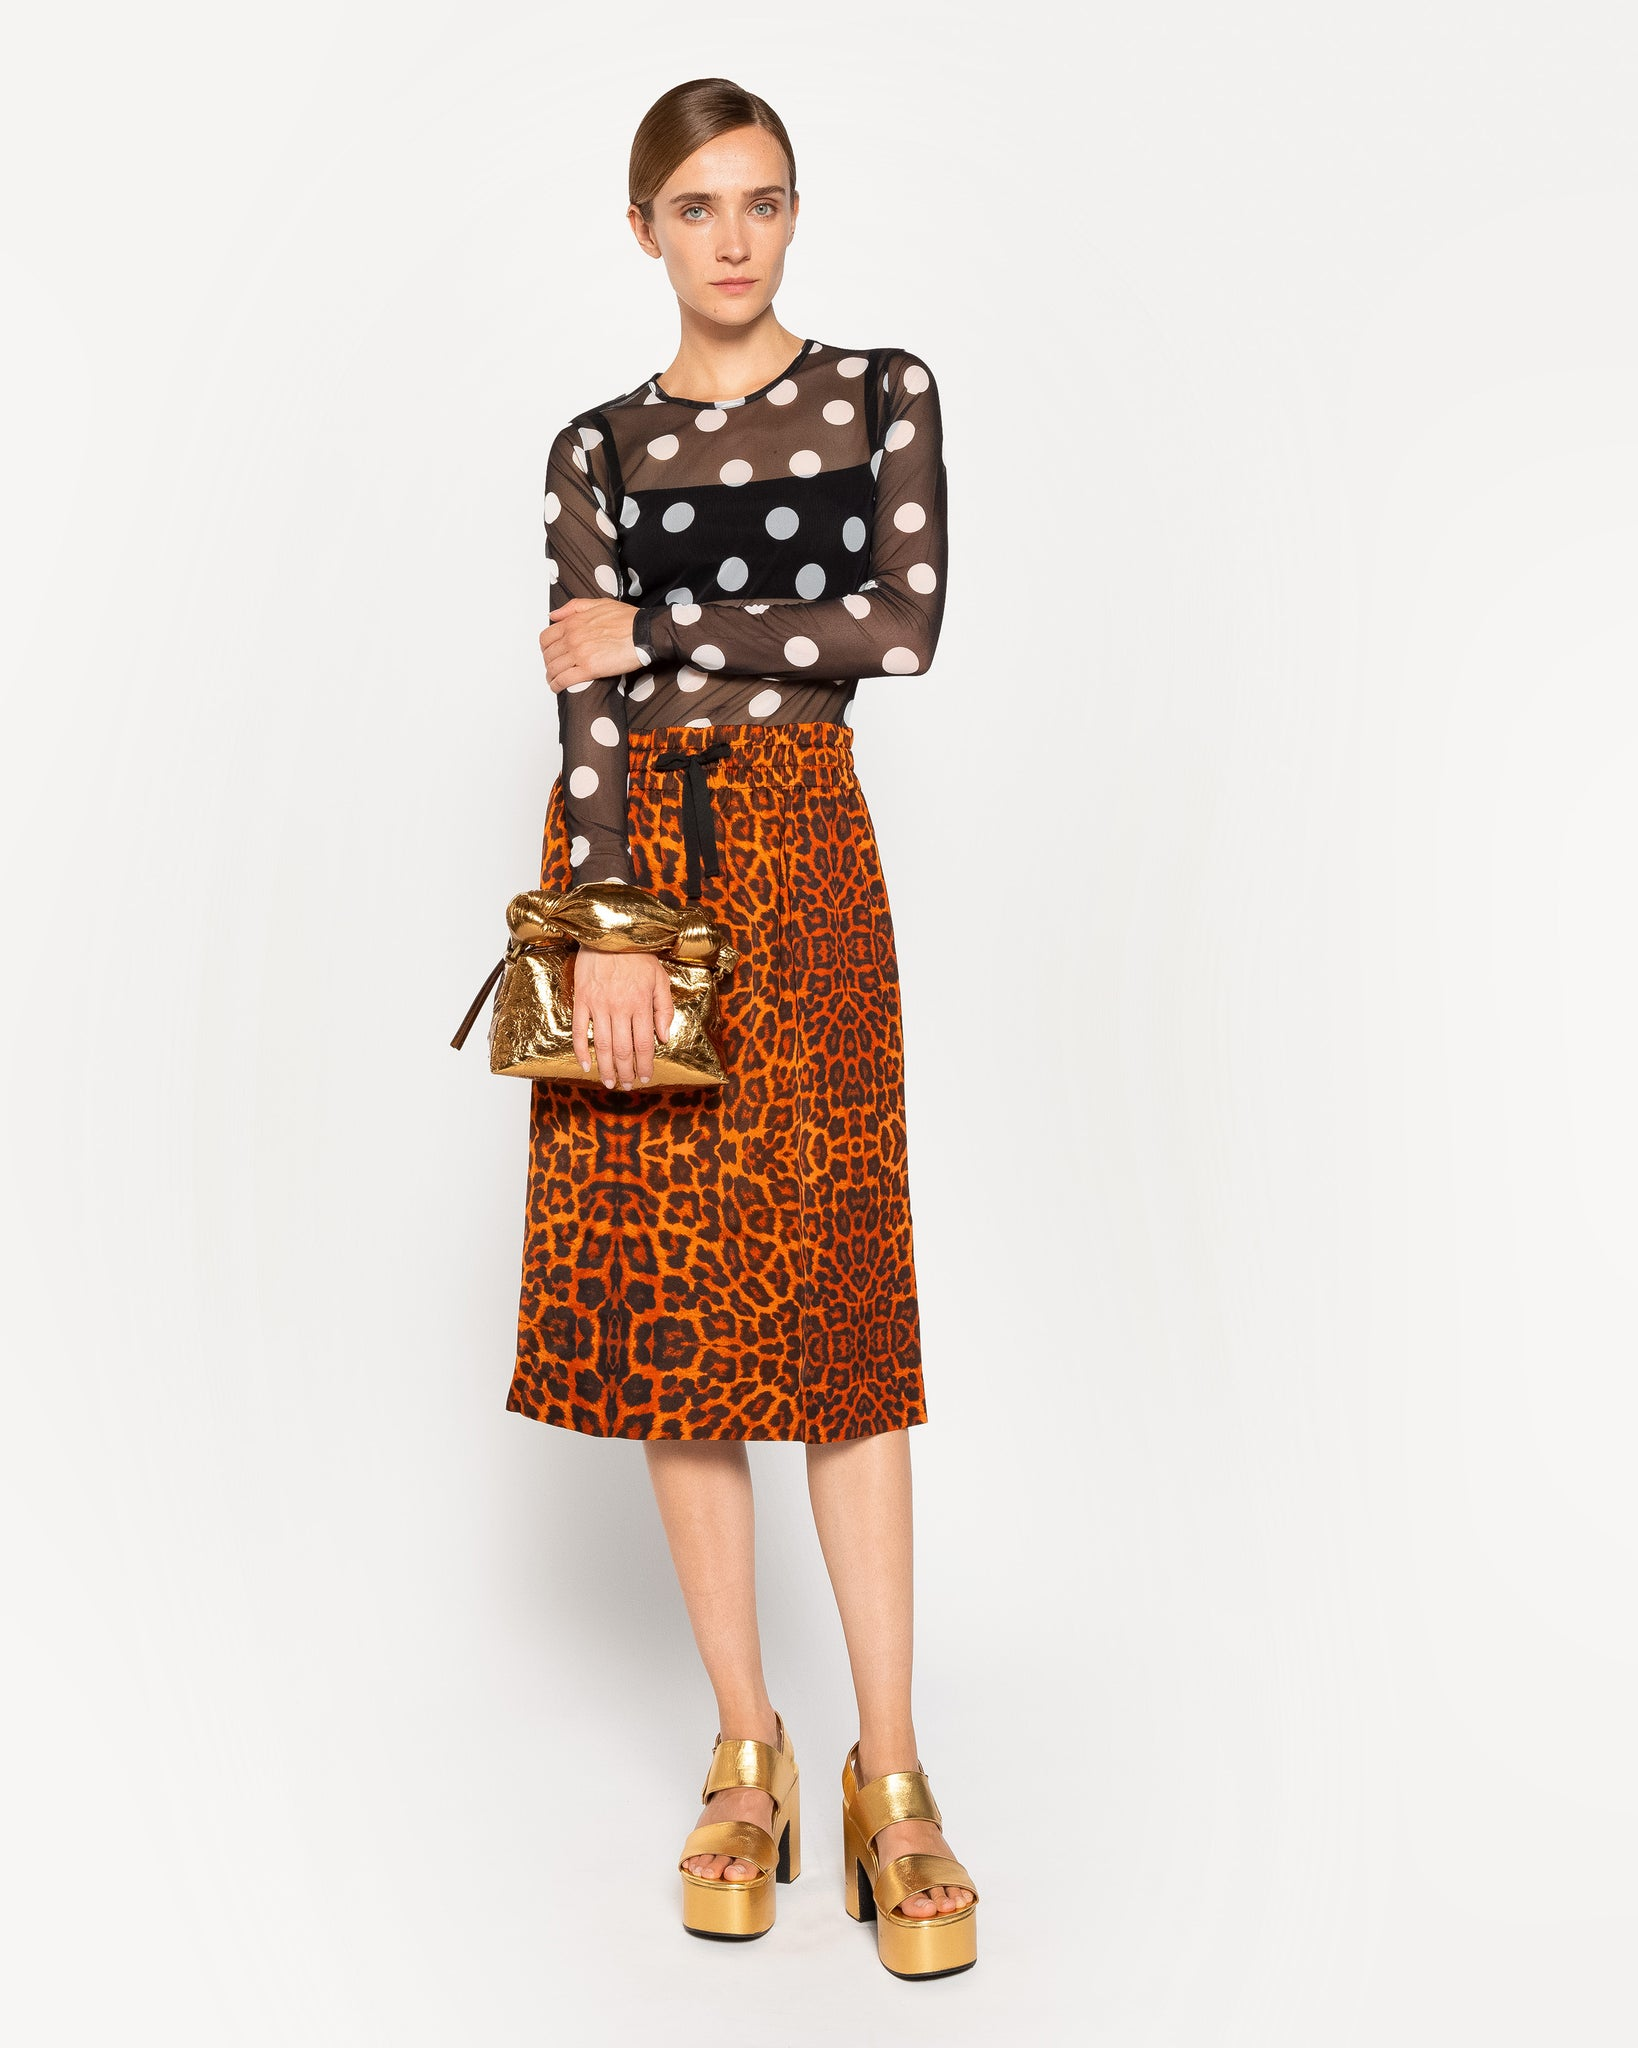 SOLIDOS pencil skirt